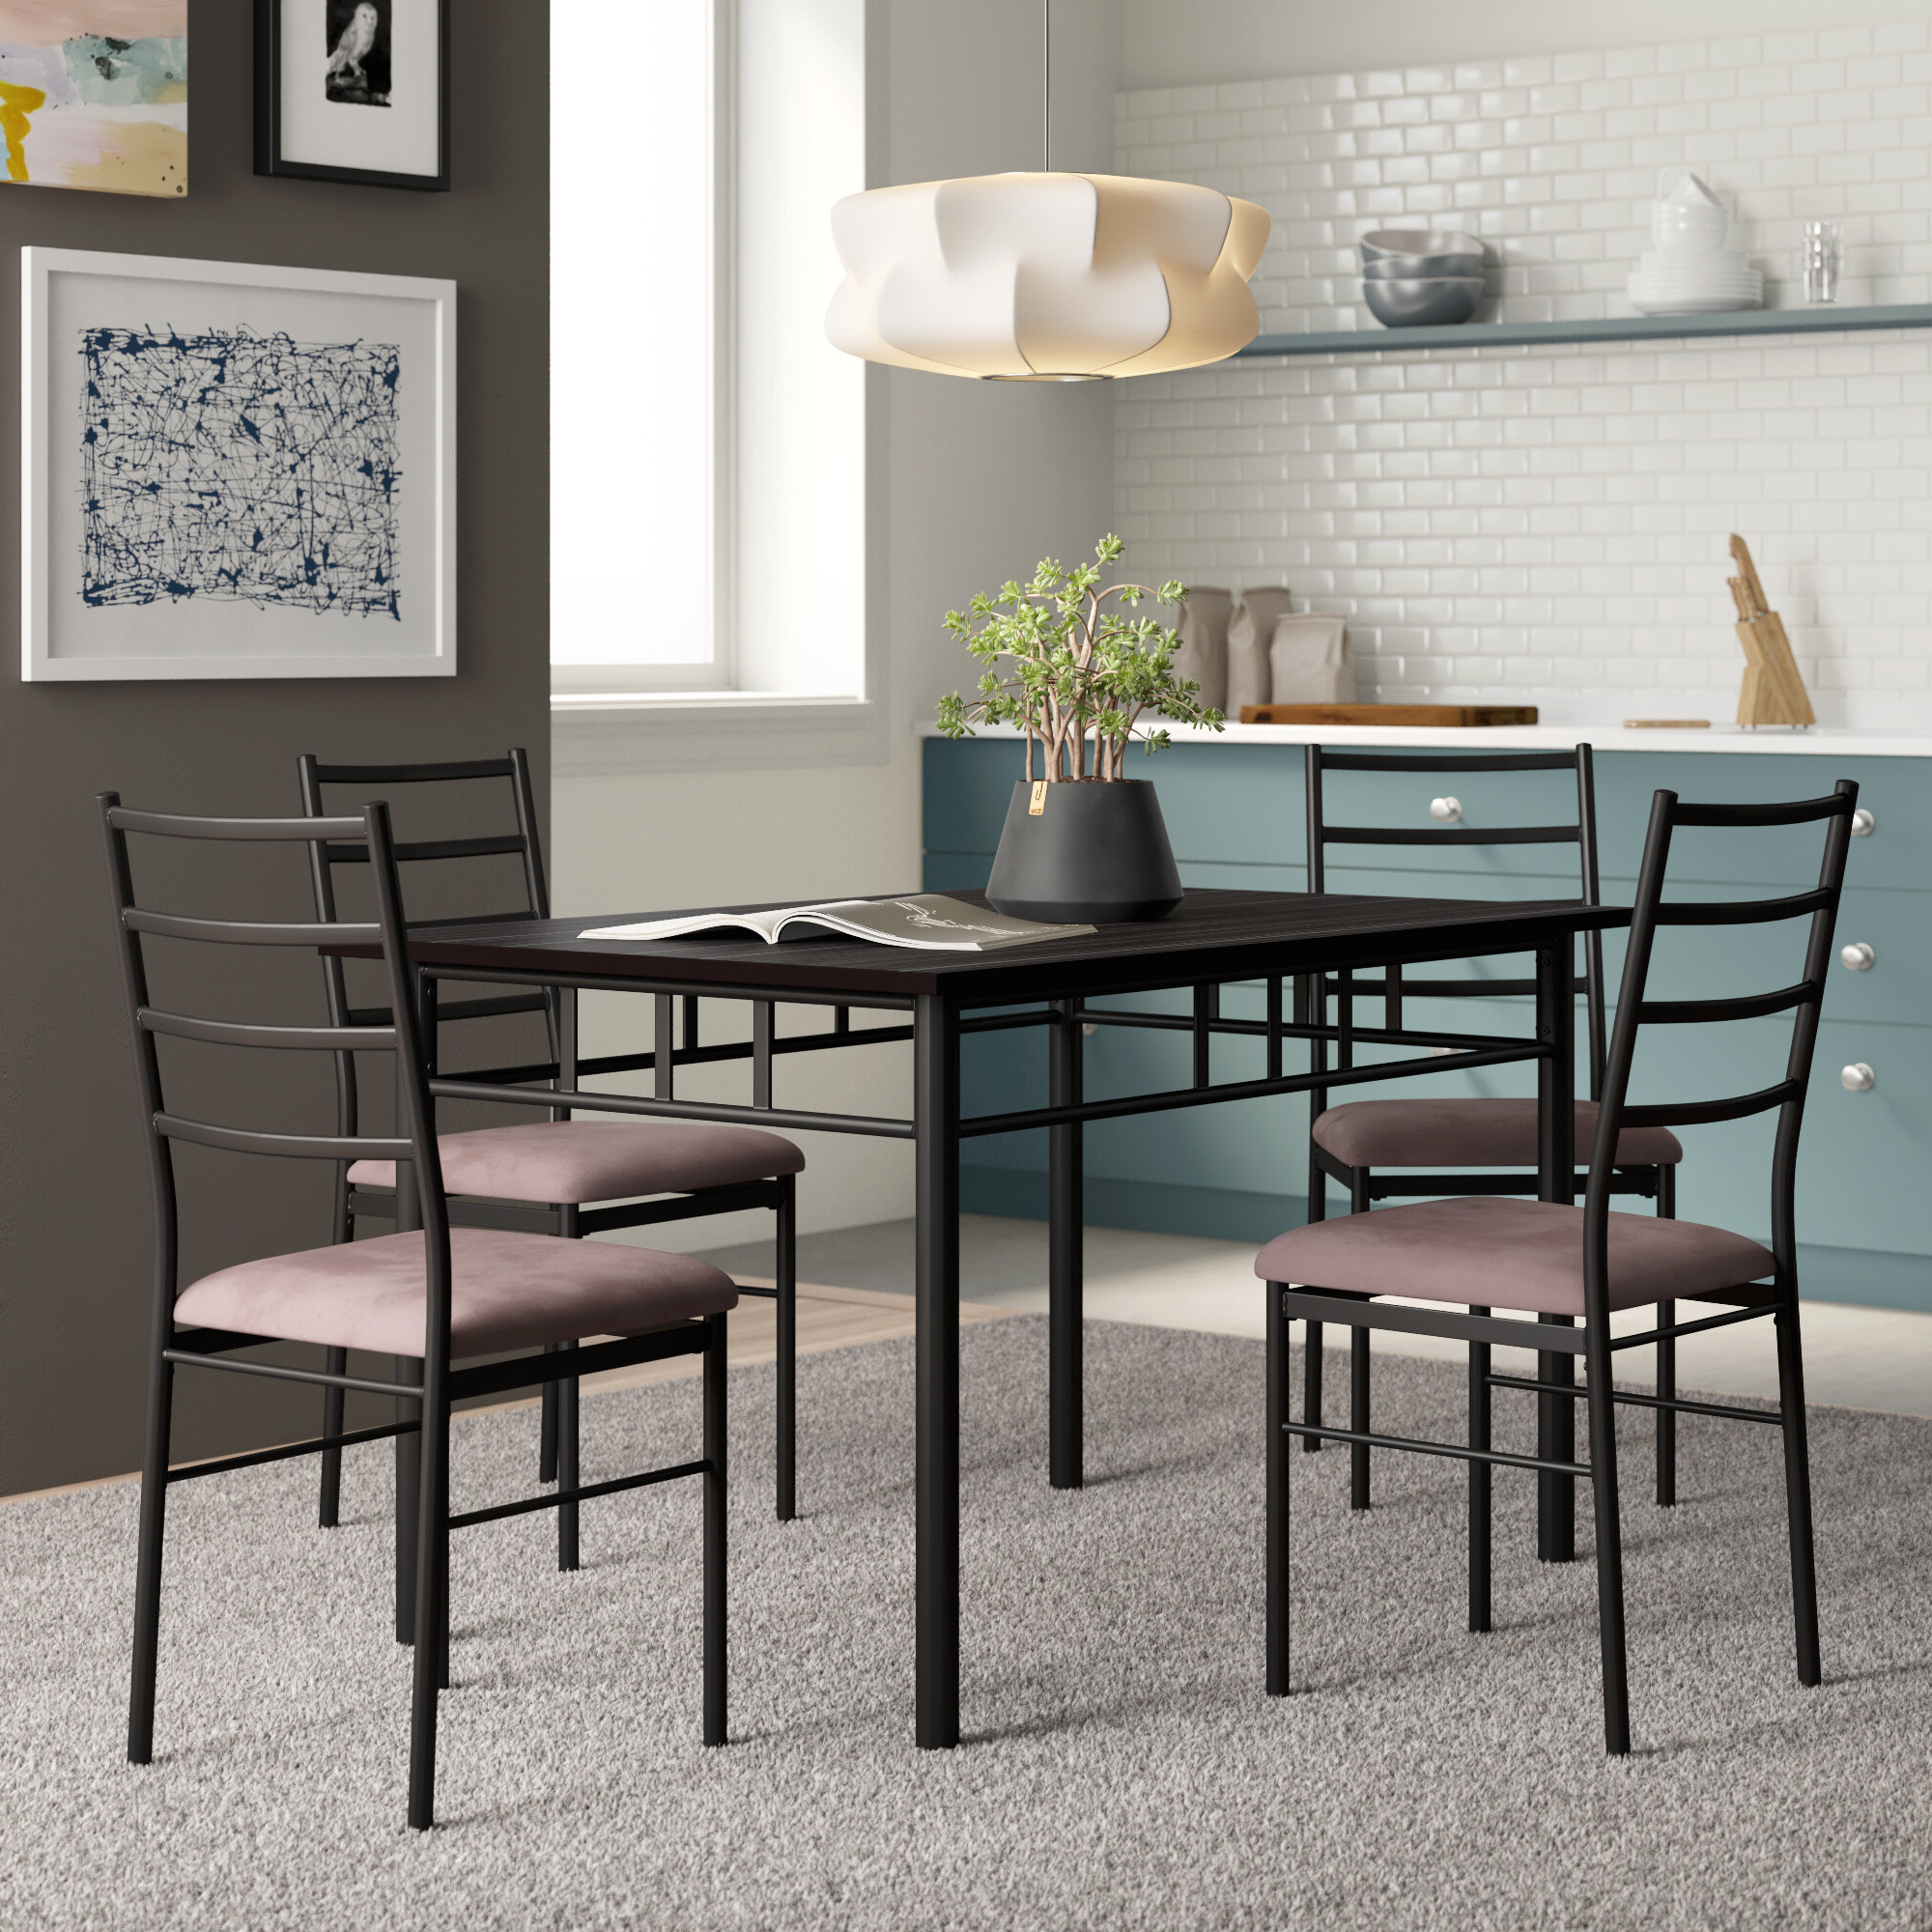 Jarrod 5 Piece Dining Sets Within 2018 Jarrod 5 Piece Dining Set (Gallery 1 of 20)